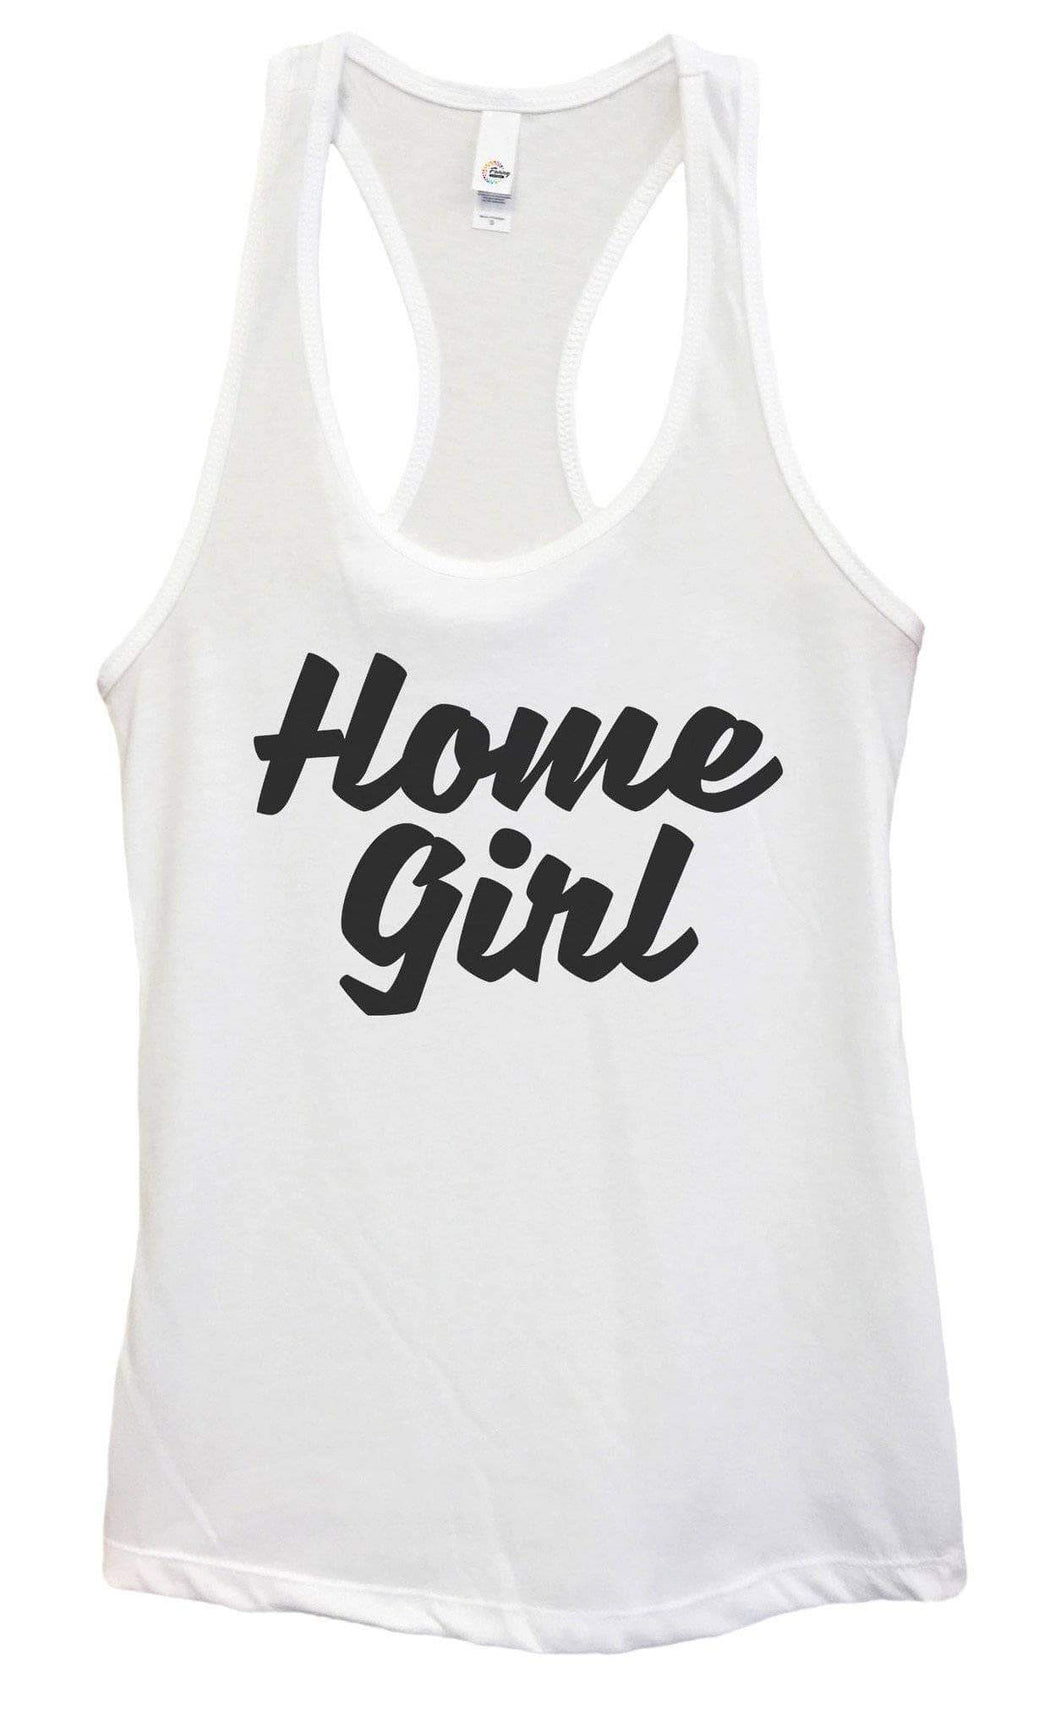 Womens Home Girl Grapahic Design Fitted Tank Top Small Womens Tank Tops White